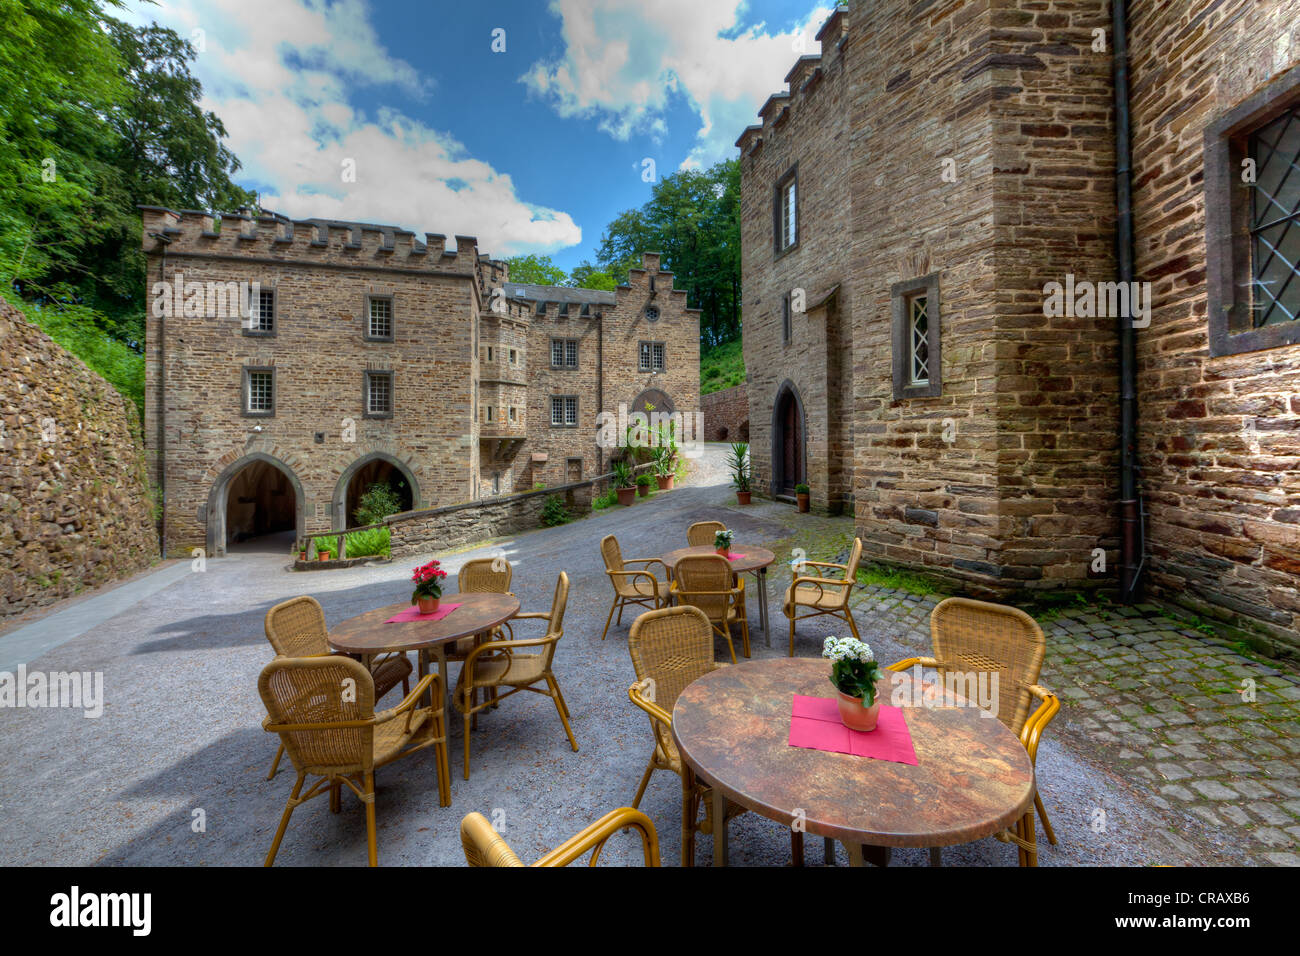 Bailey castle and stables of Schloss Stolzenfels Castle, Koblenz, UNESCO World Heritage Upper Middle Rhine Valley - Stock Image